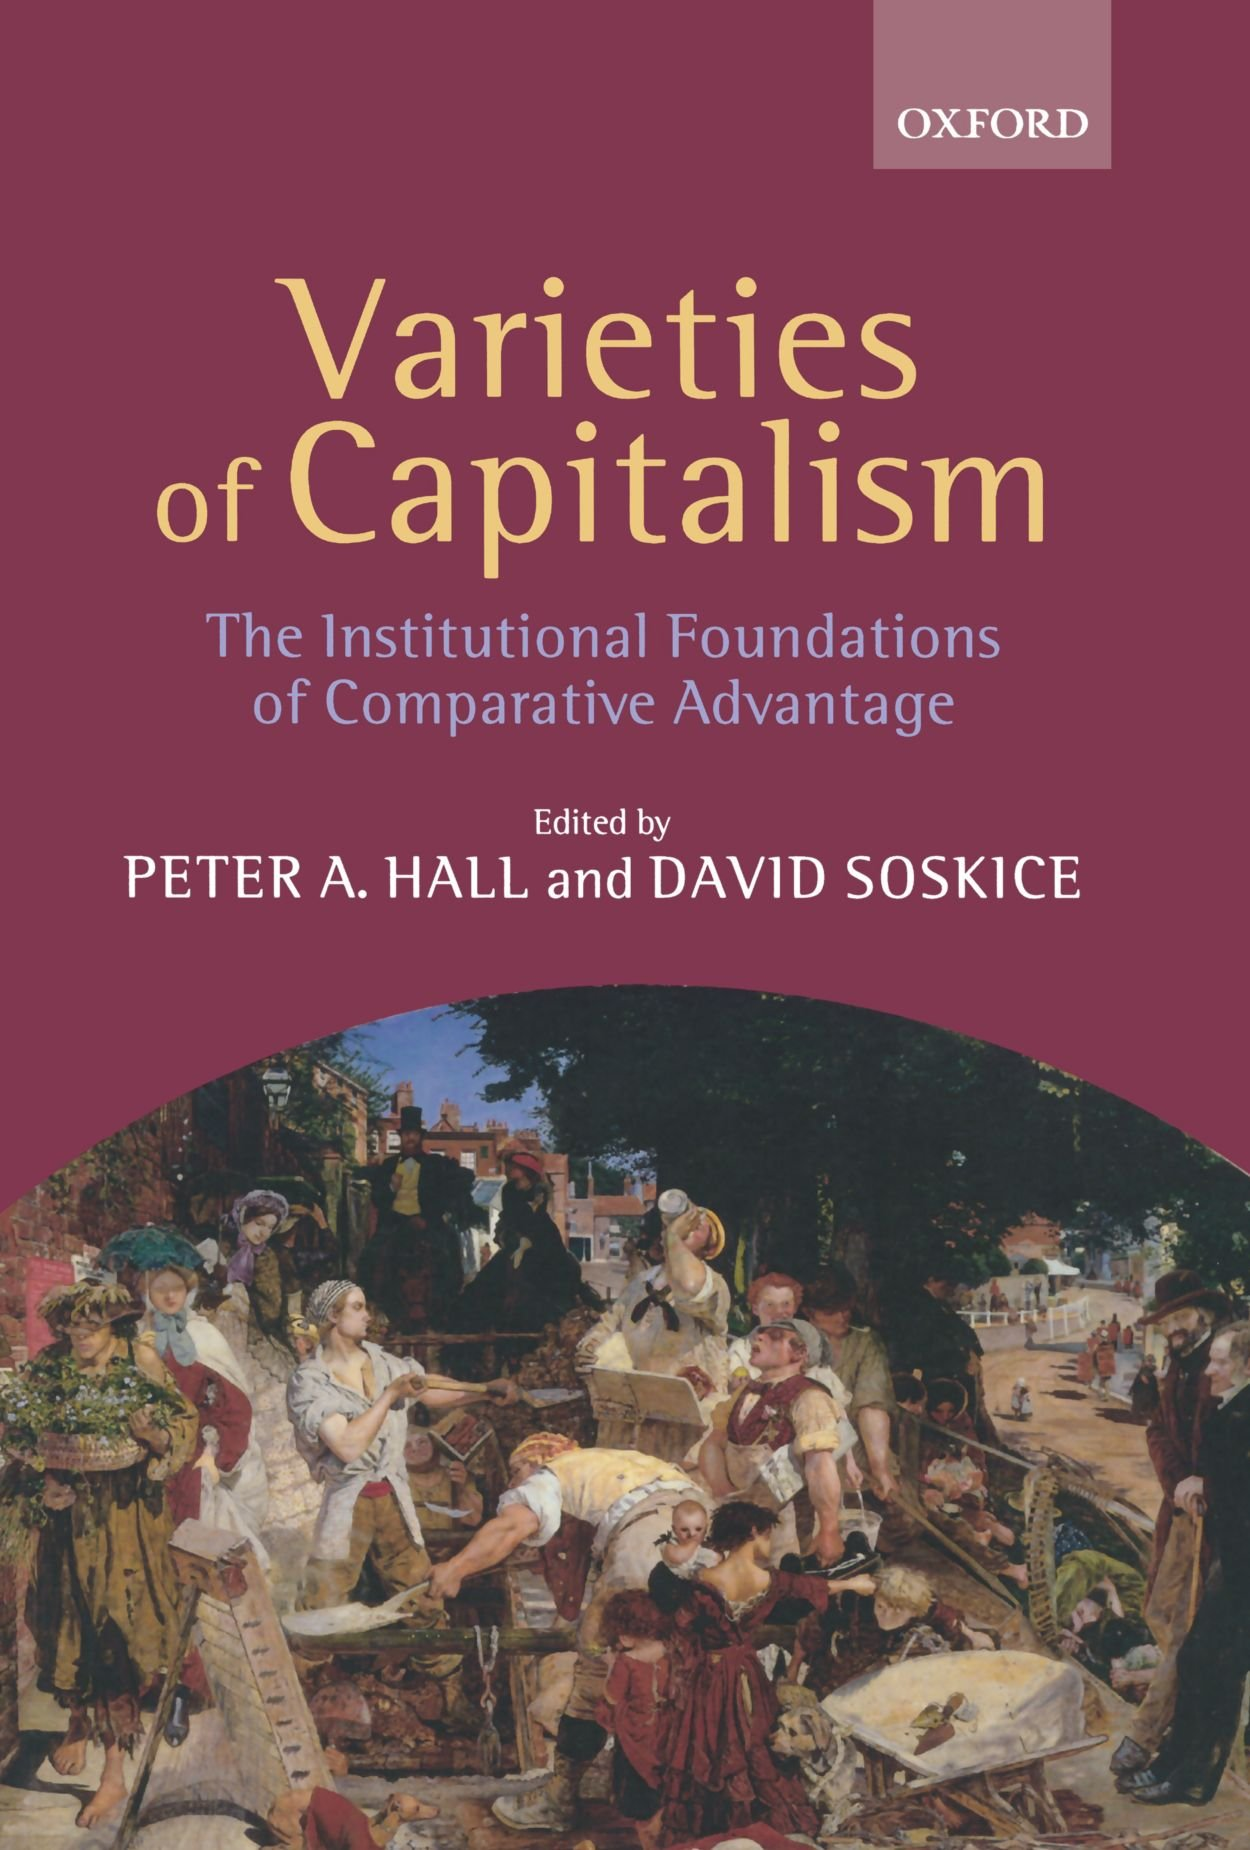 Varieties of Capitalism: The Institutional Foundations of Comparative Advantage